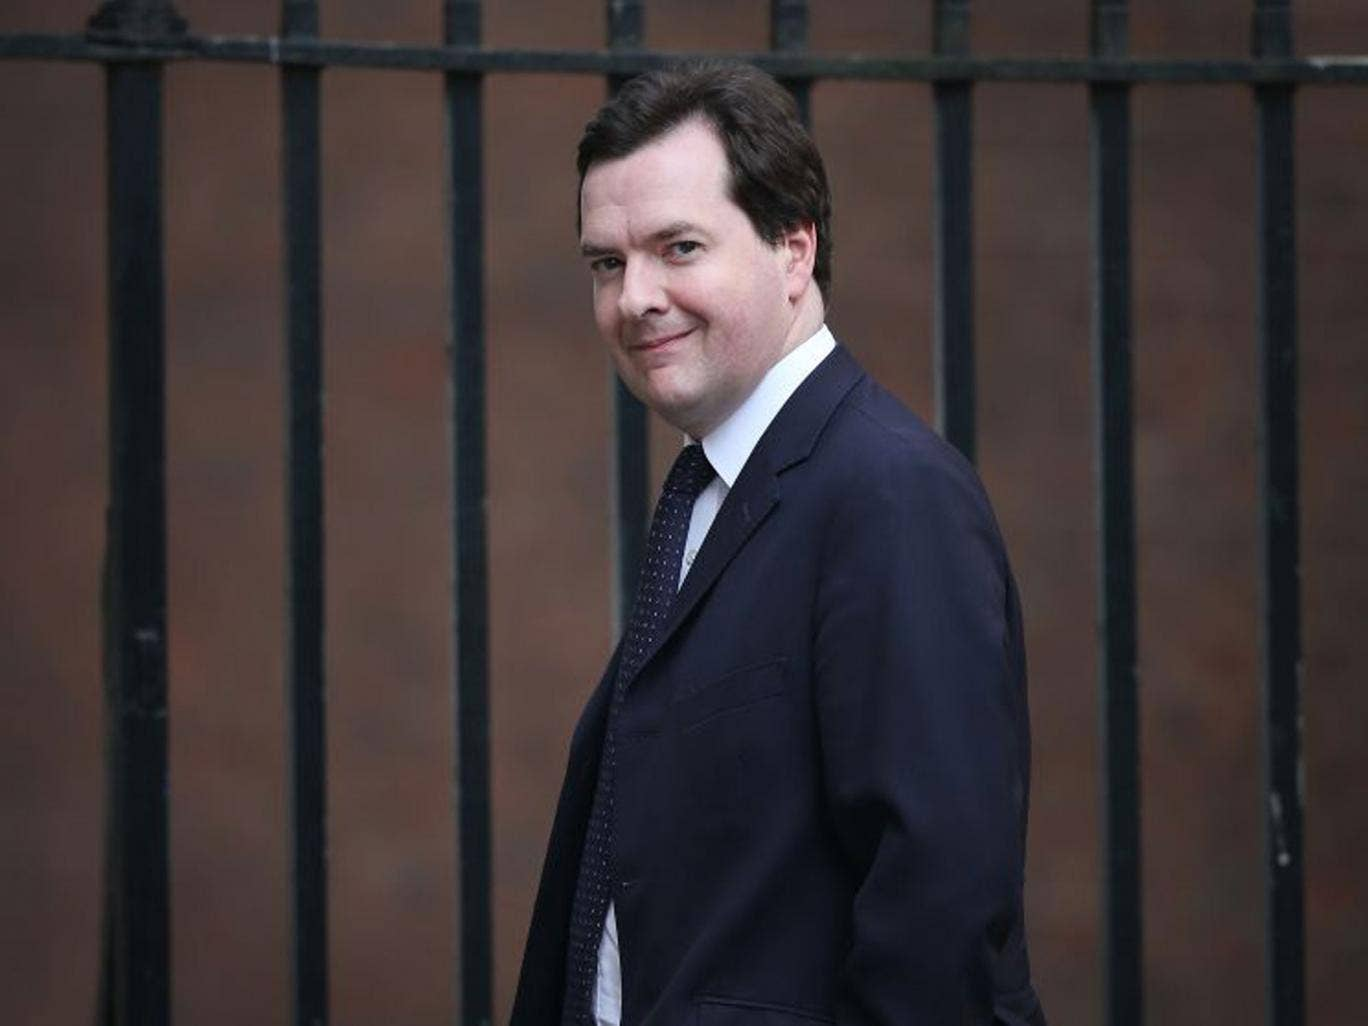 George Osborne has been criticised for raising the personal tax allowance to £10,000 a year from next month